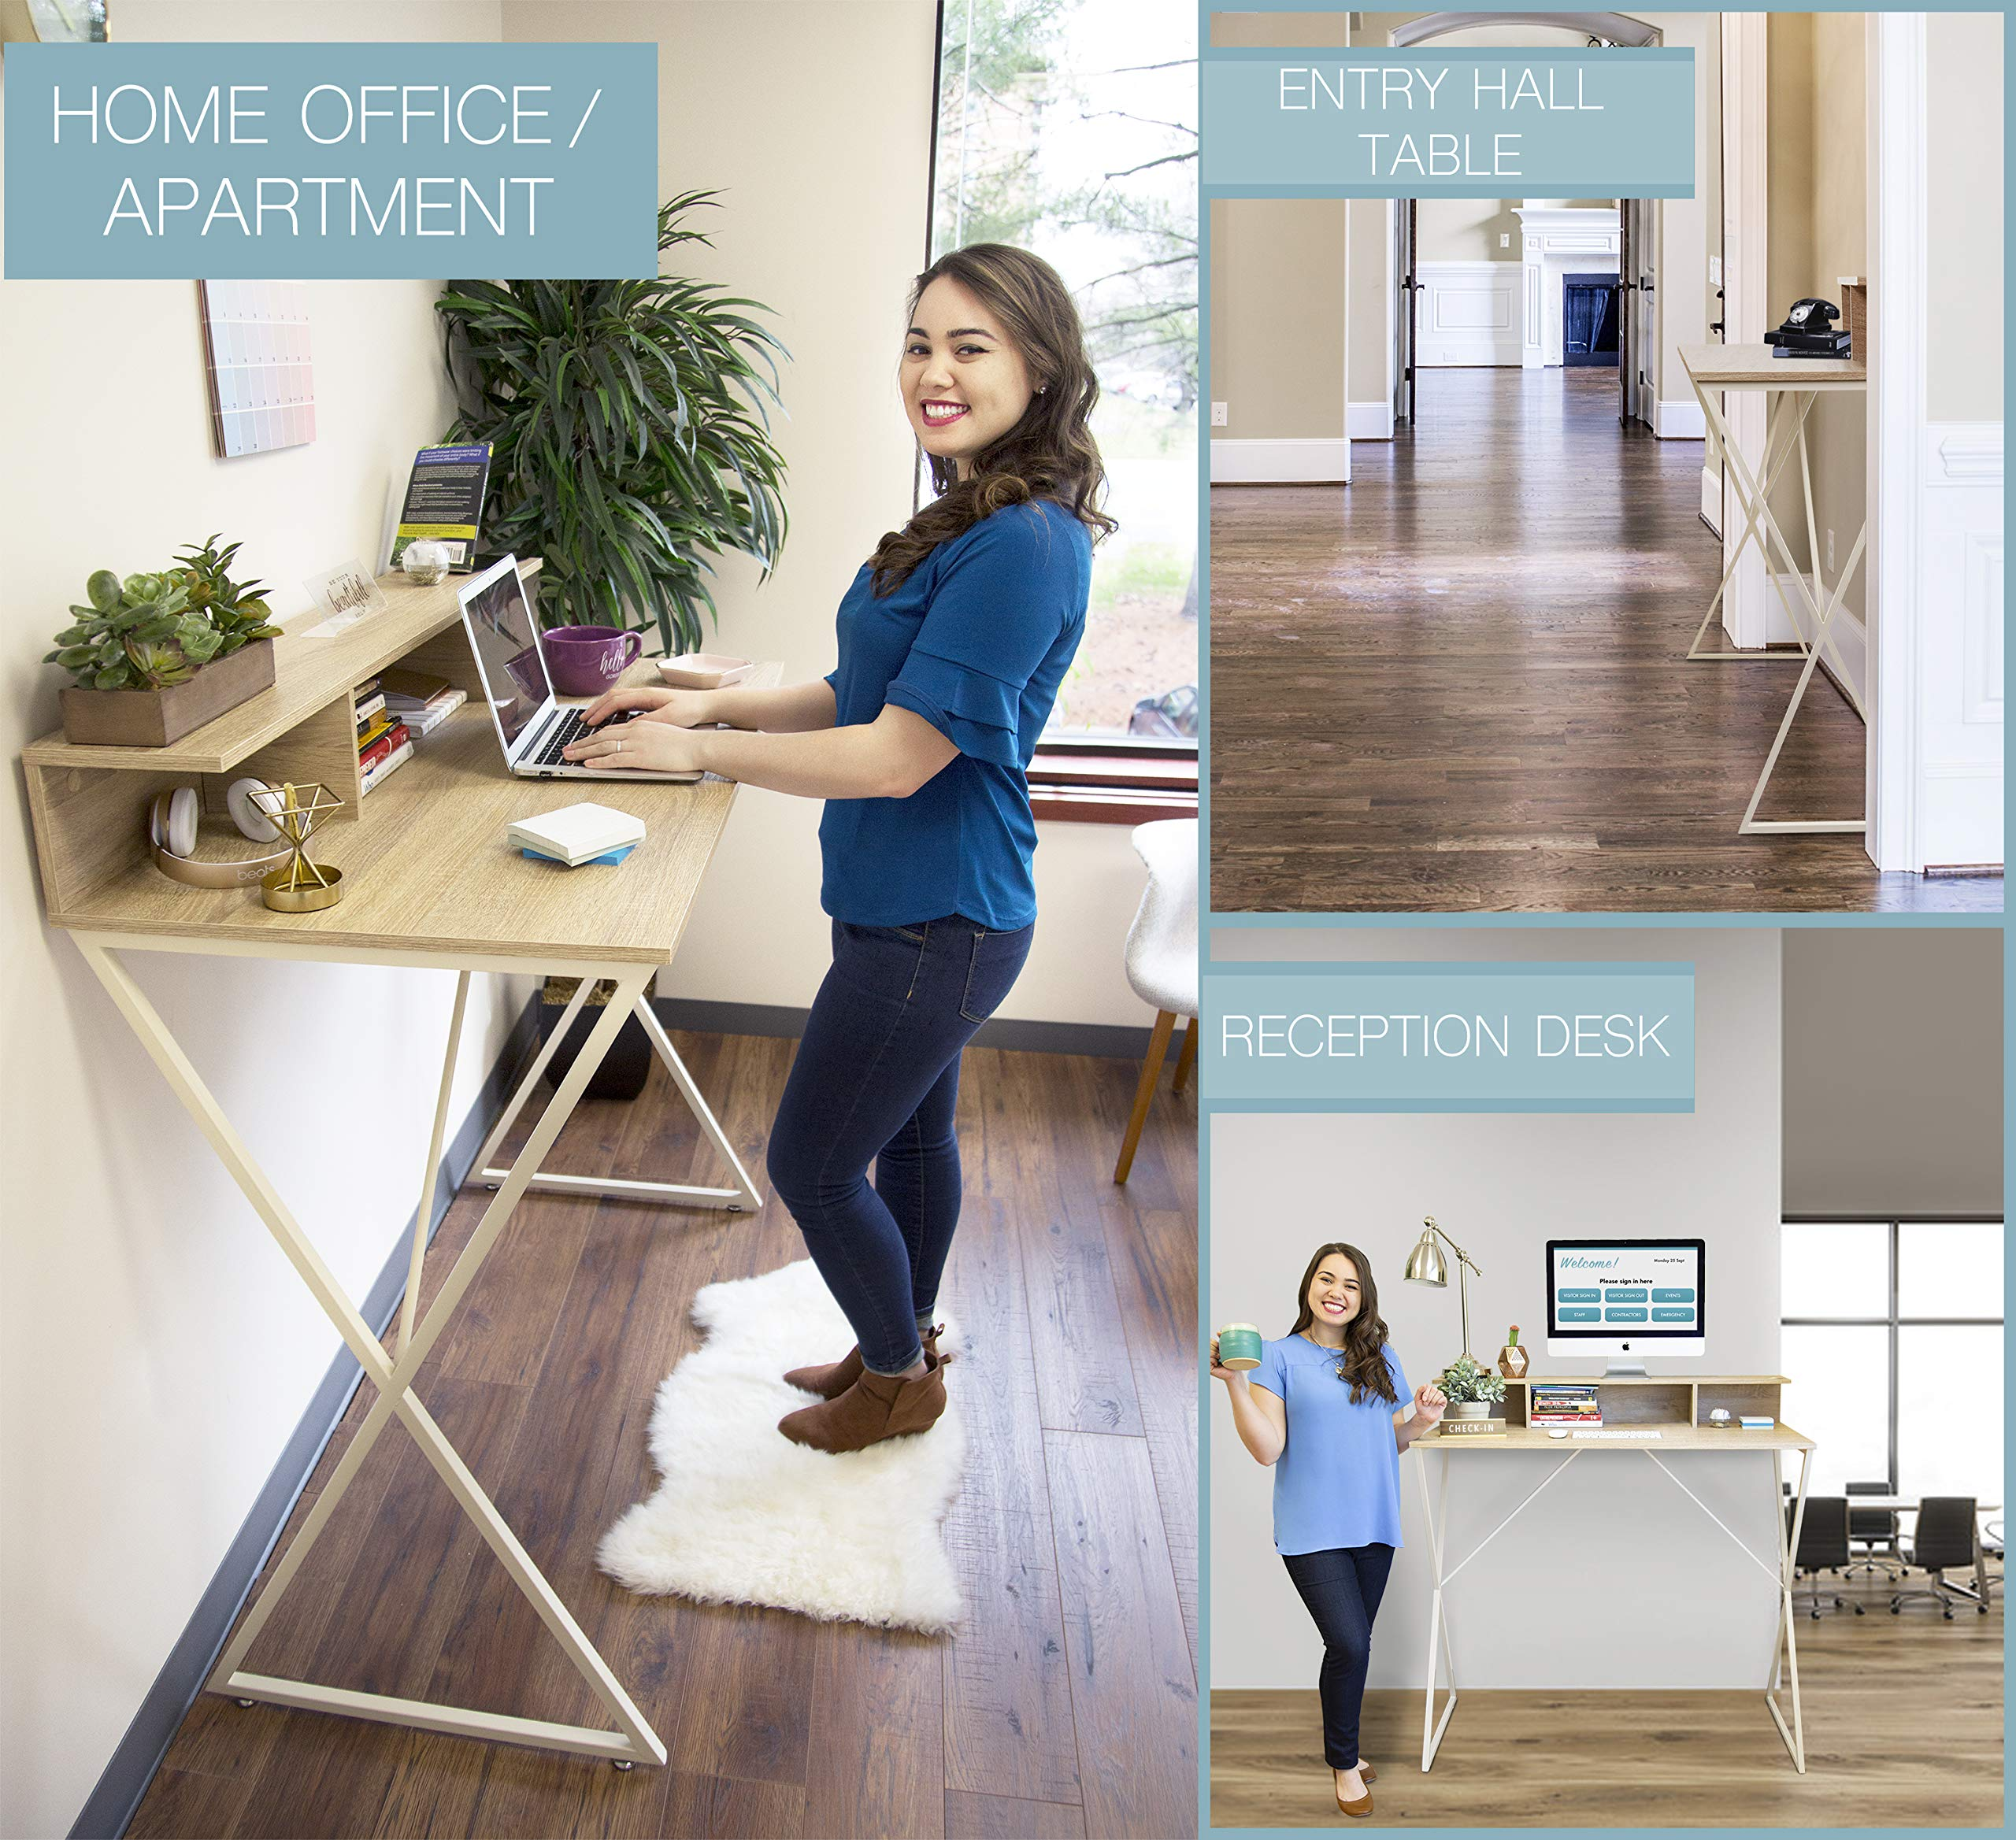 Joy Desk by Stand Steady - Modern Home Office Standing Desk Workstation with Storage Cubbies! - 47.5'' x 41.5'' by Stand Steady (Image #4)